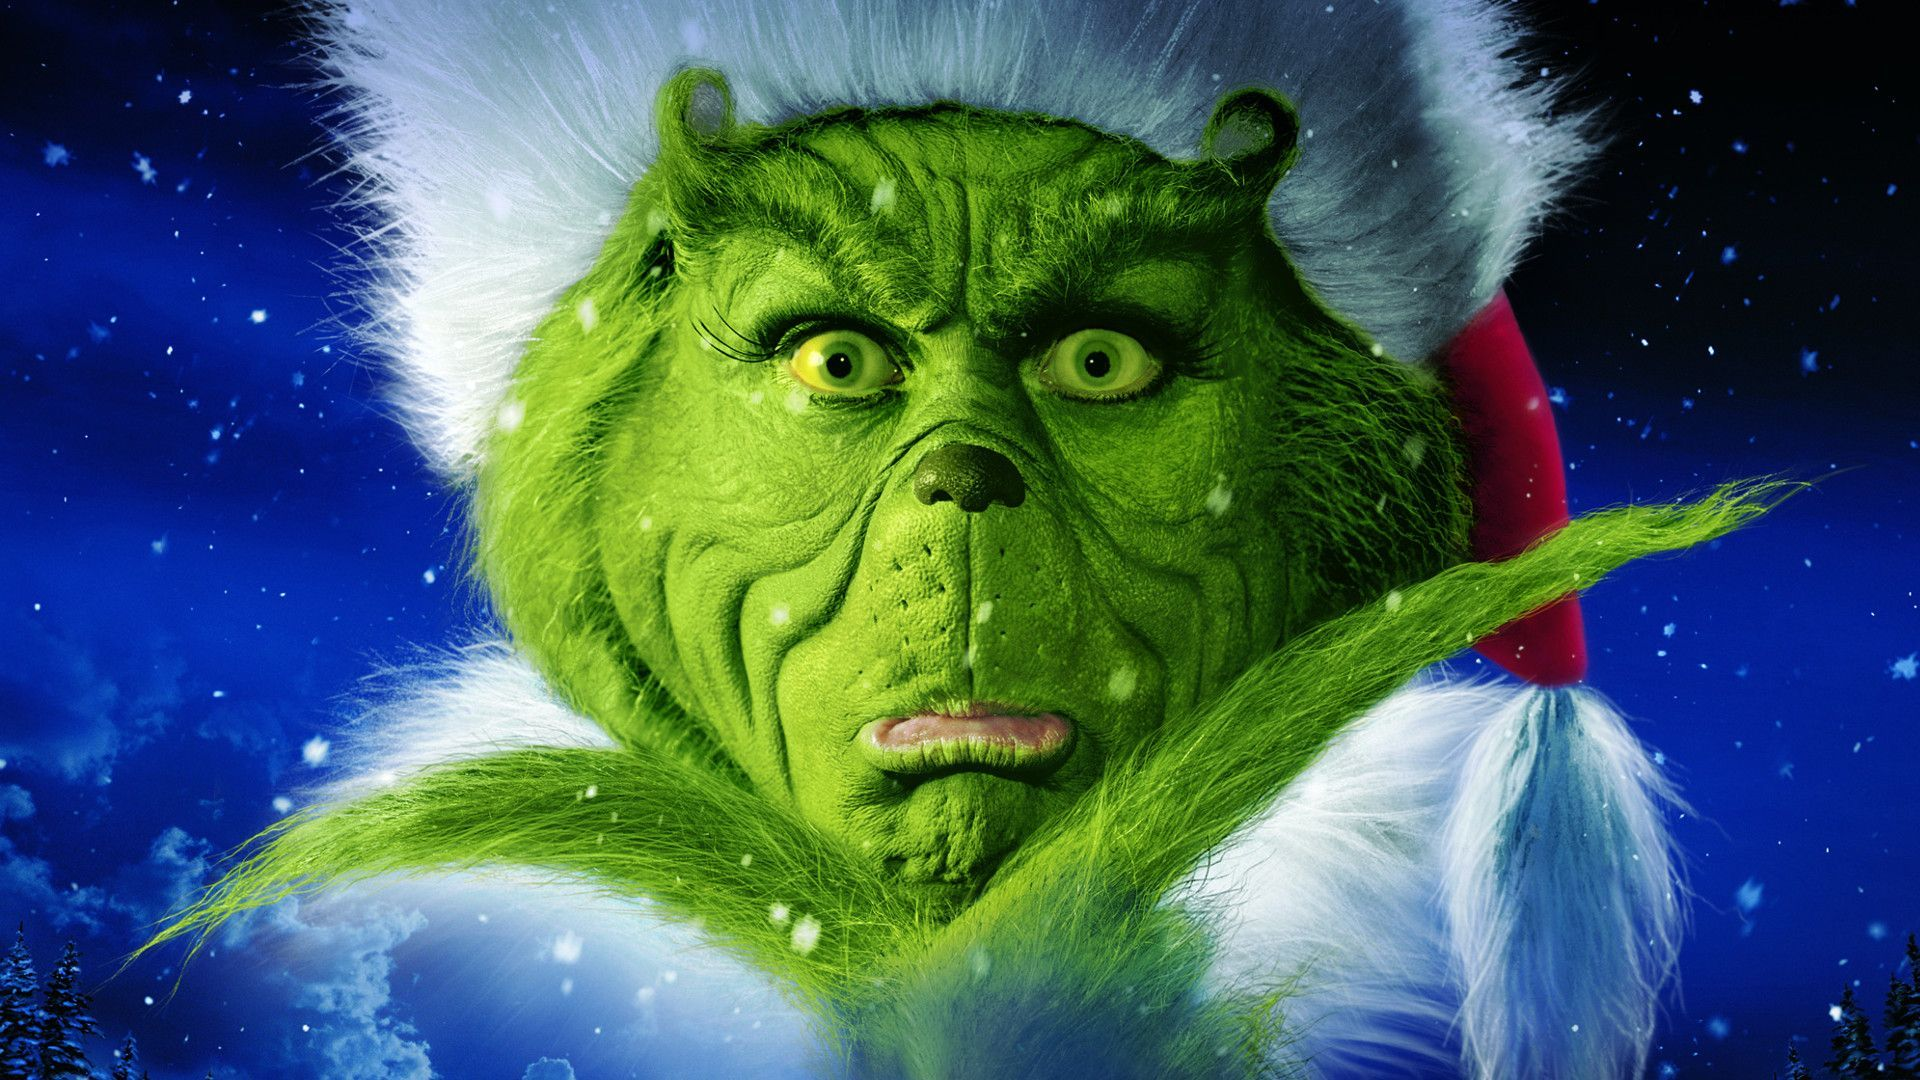 Funny Grinch Wallpapers   Top Funny Grinch Backgrounds 1920x1080